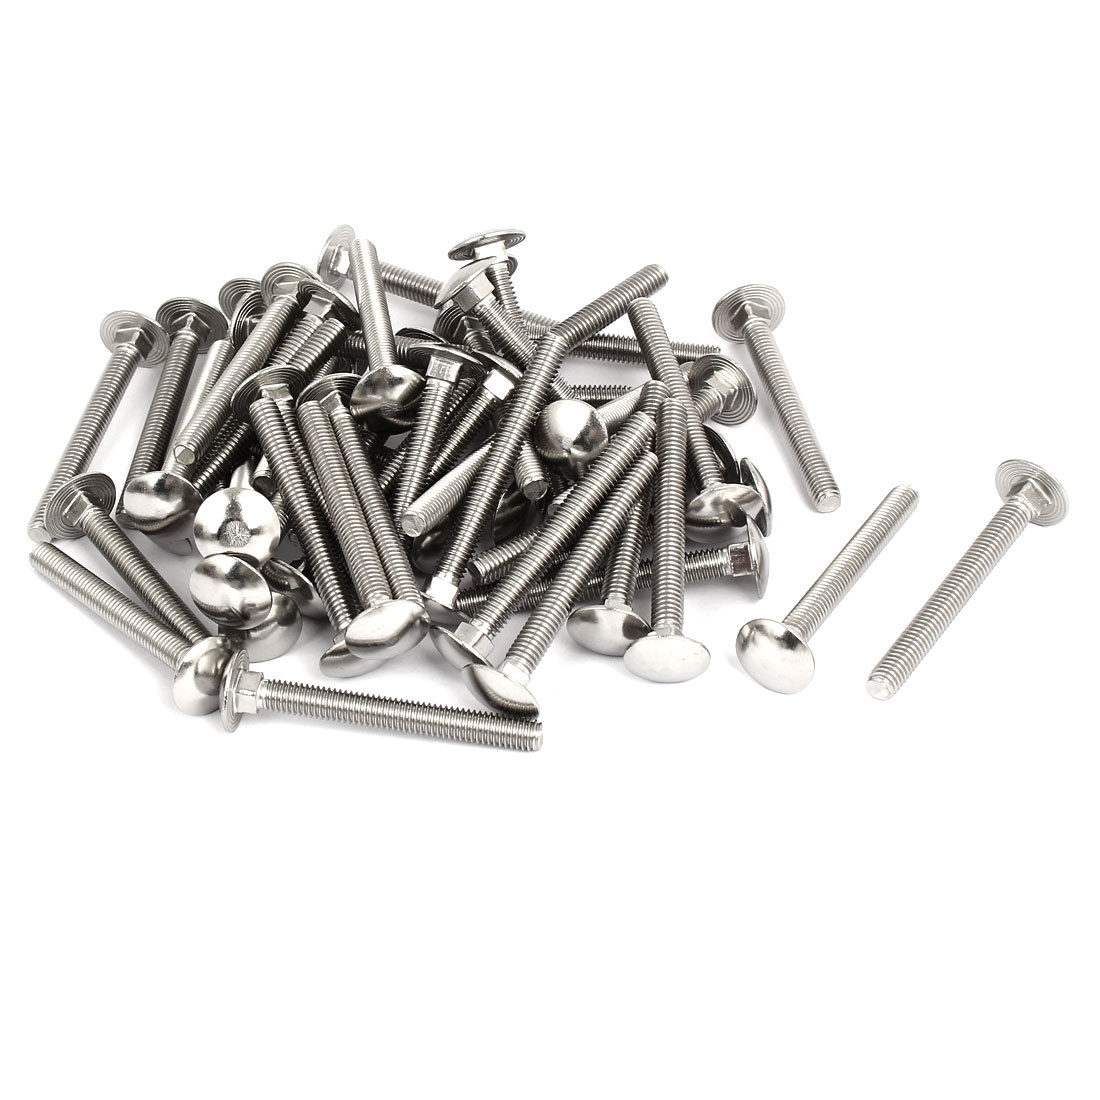 M6x55mm 304 Stainless Steel Fully Thread Square Neck Carriage Bolts DIN603 50pcs